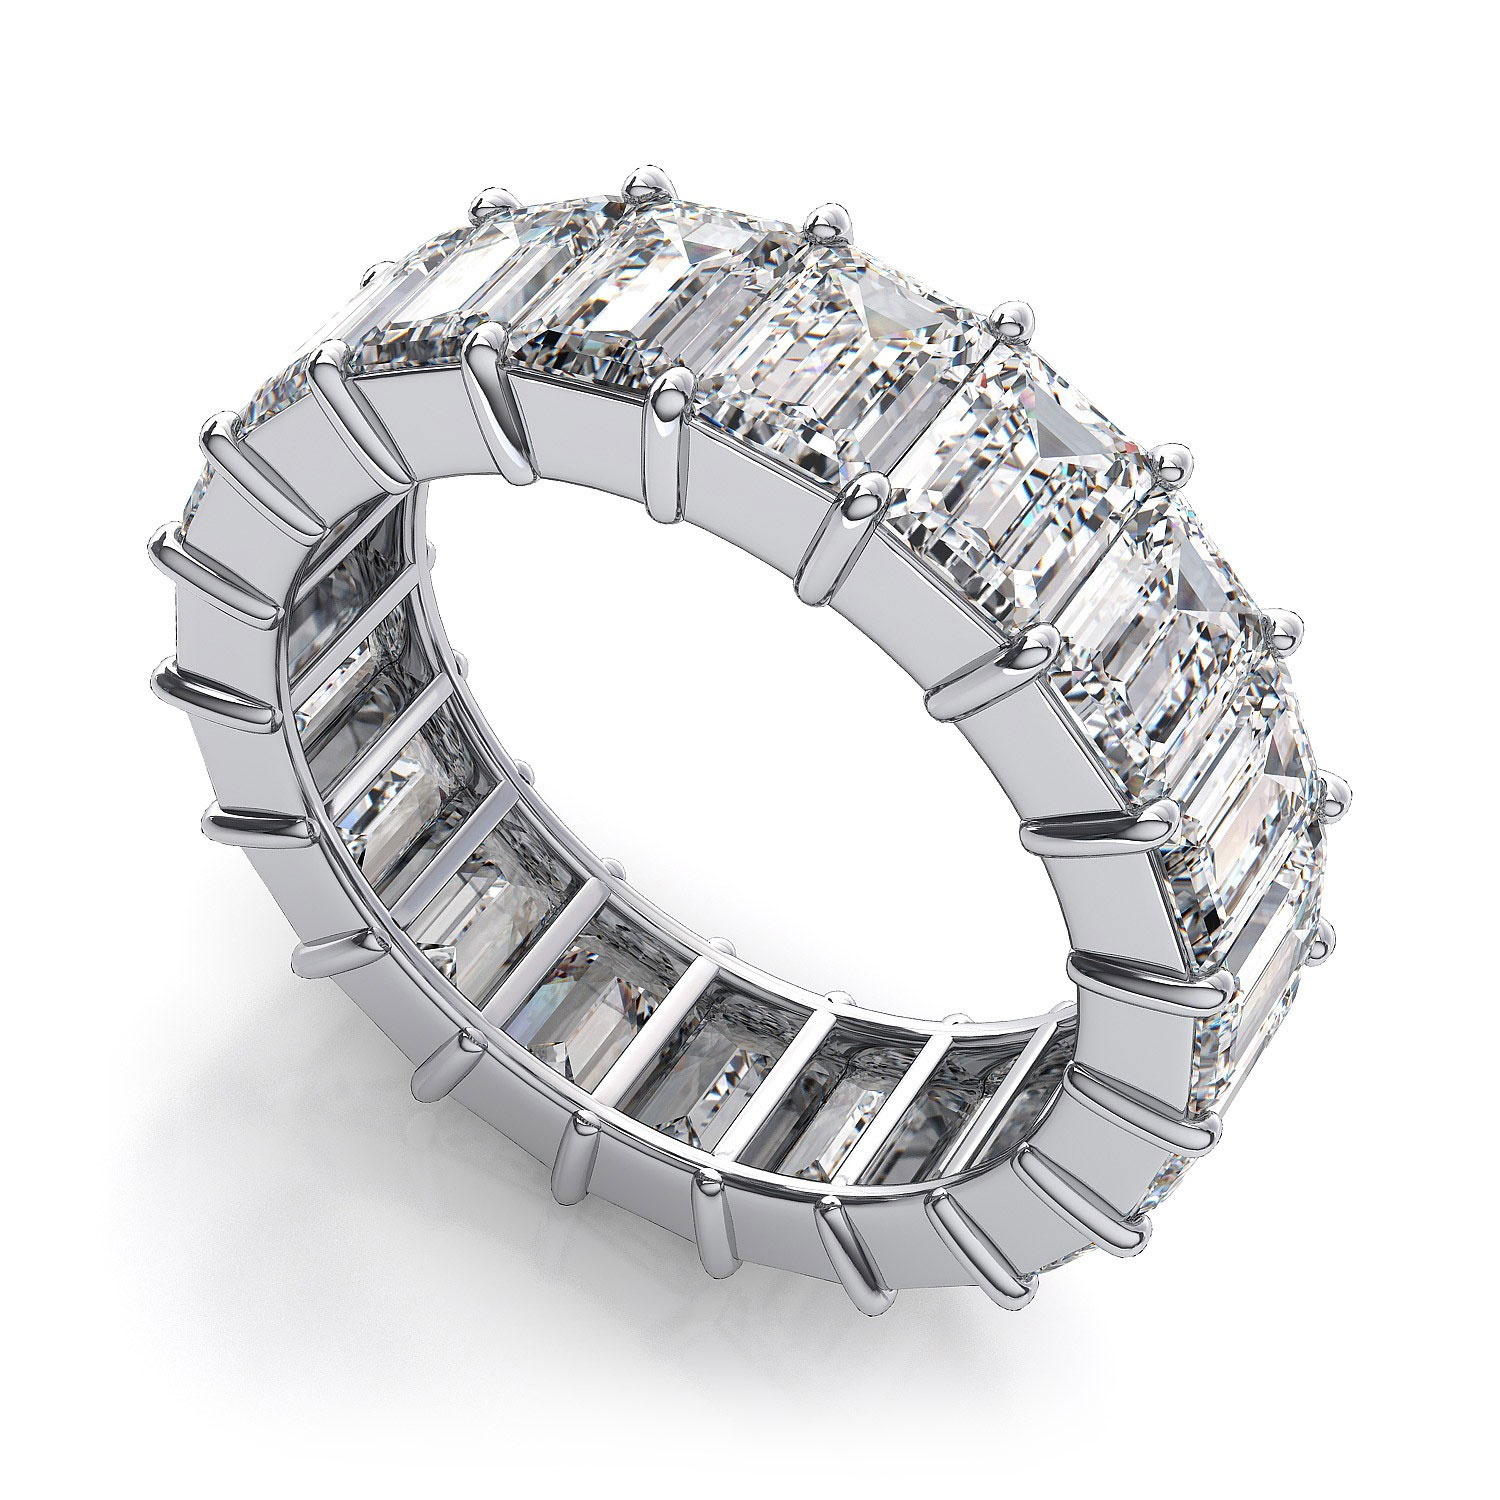 eternity blue cushion ring bands cocktail collections other luxury cubic stones rings with half quartz zirconia band alternatives crislu diamond moon